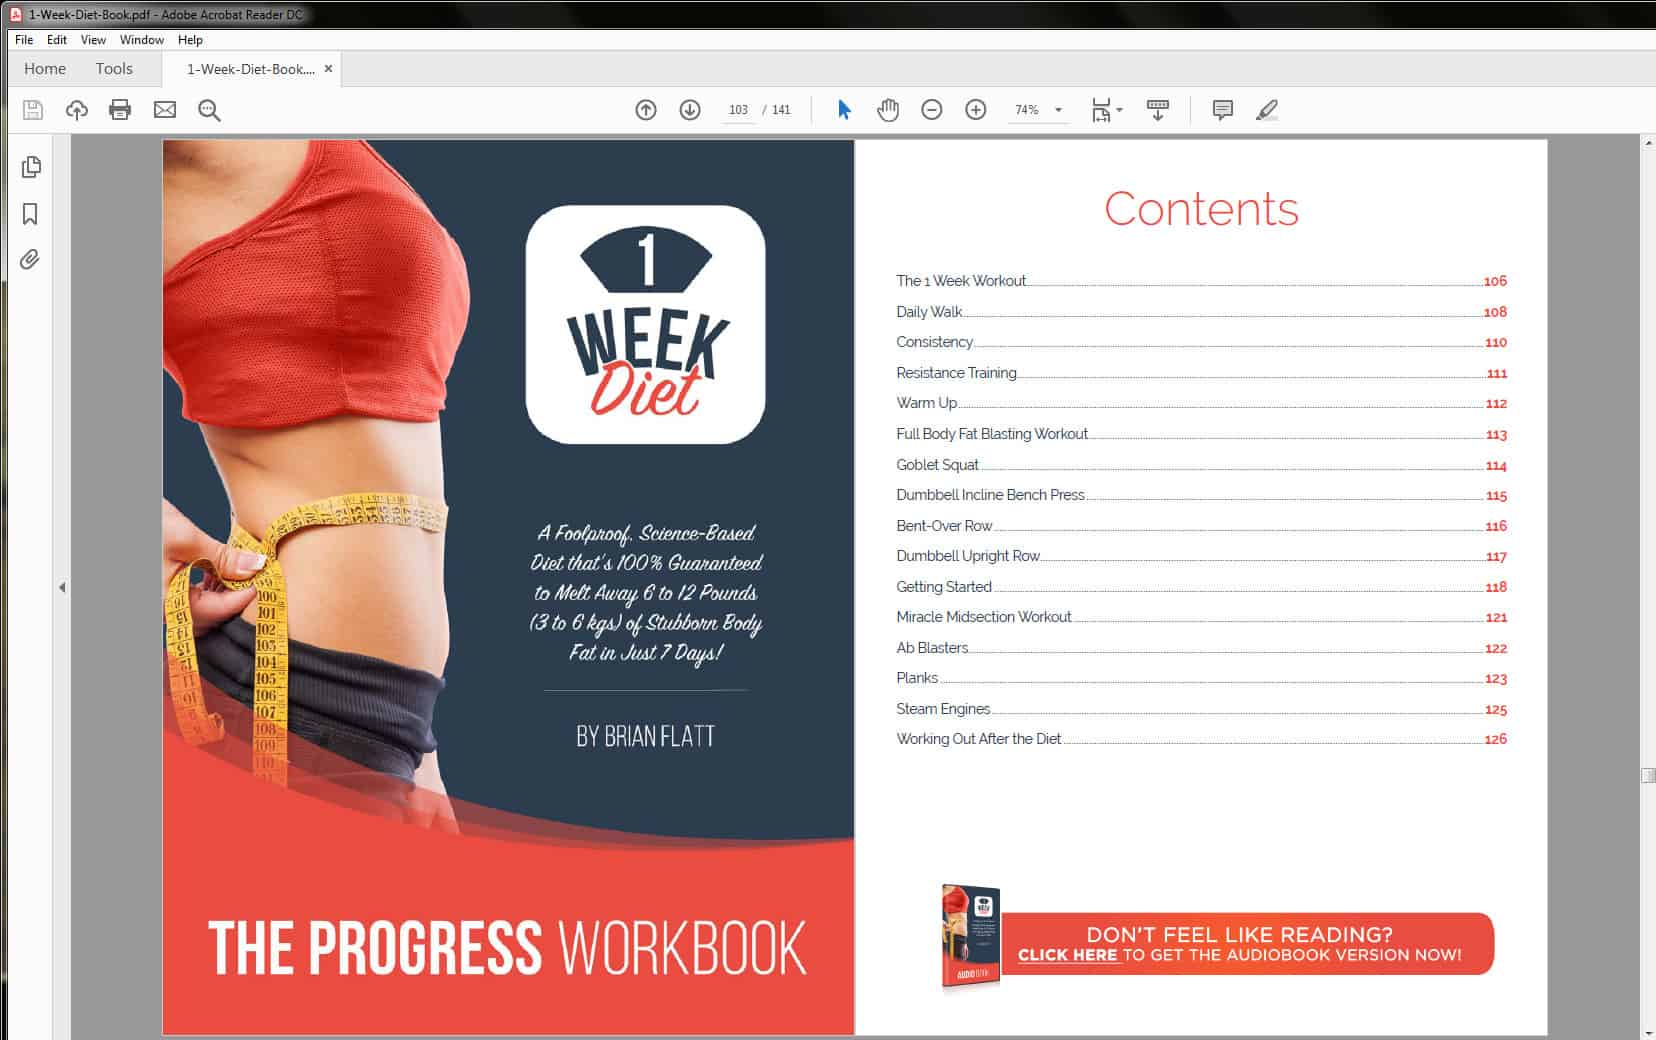 The Progress Workbook's Table of Contents